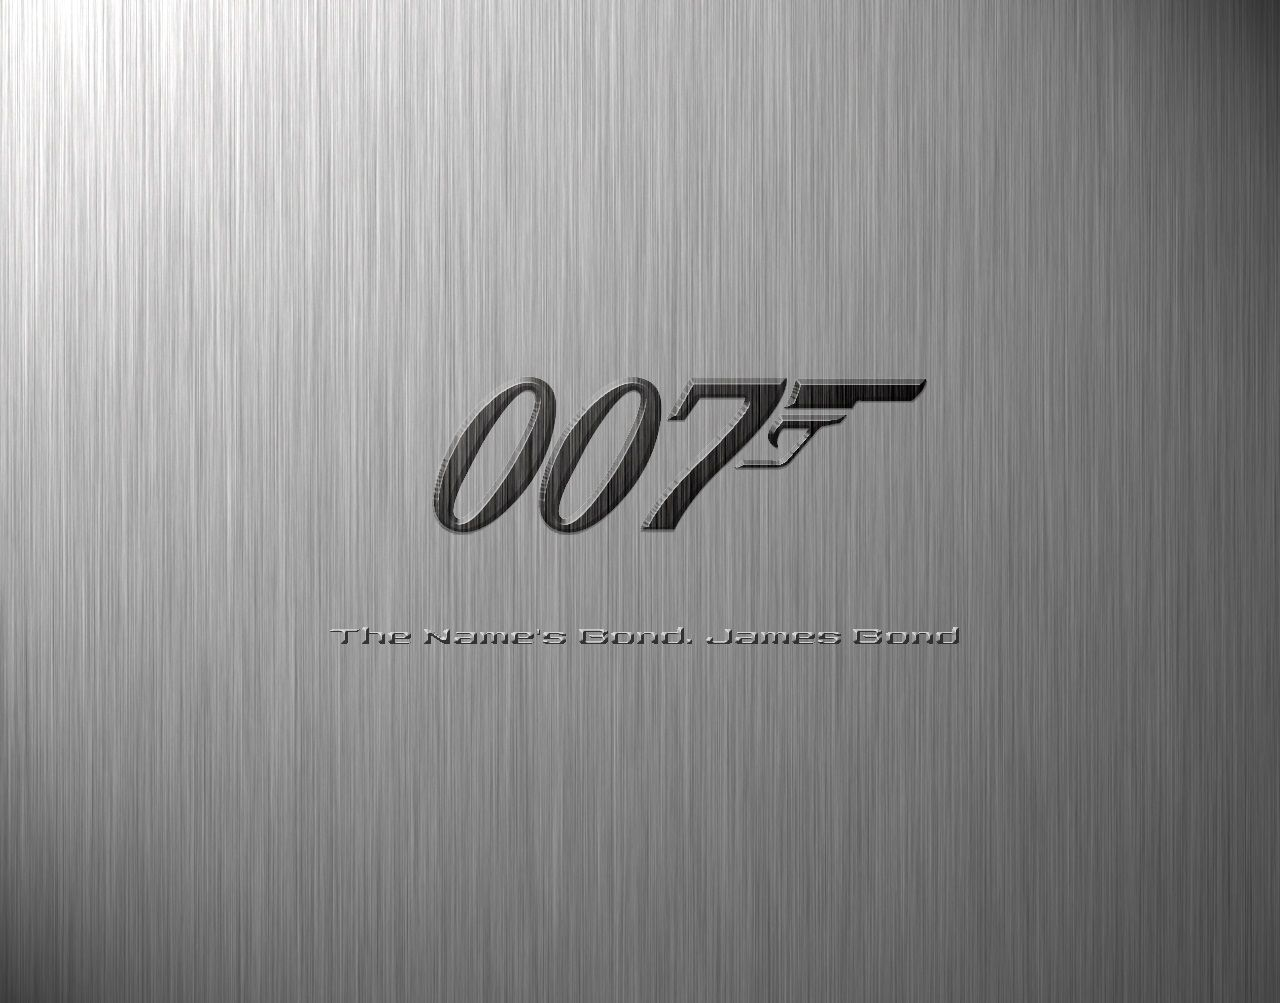 007 Wallpapers - Top Free 007 ...